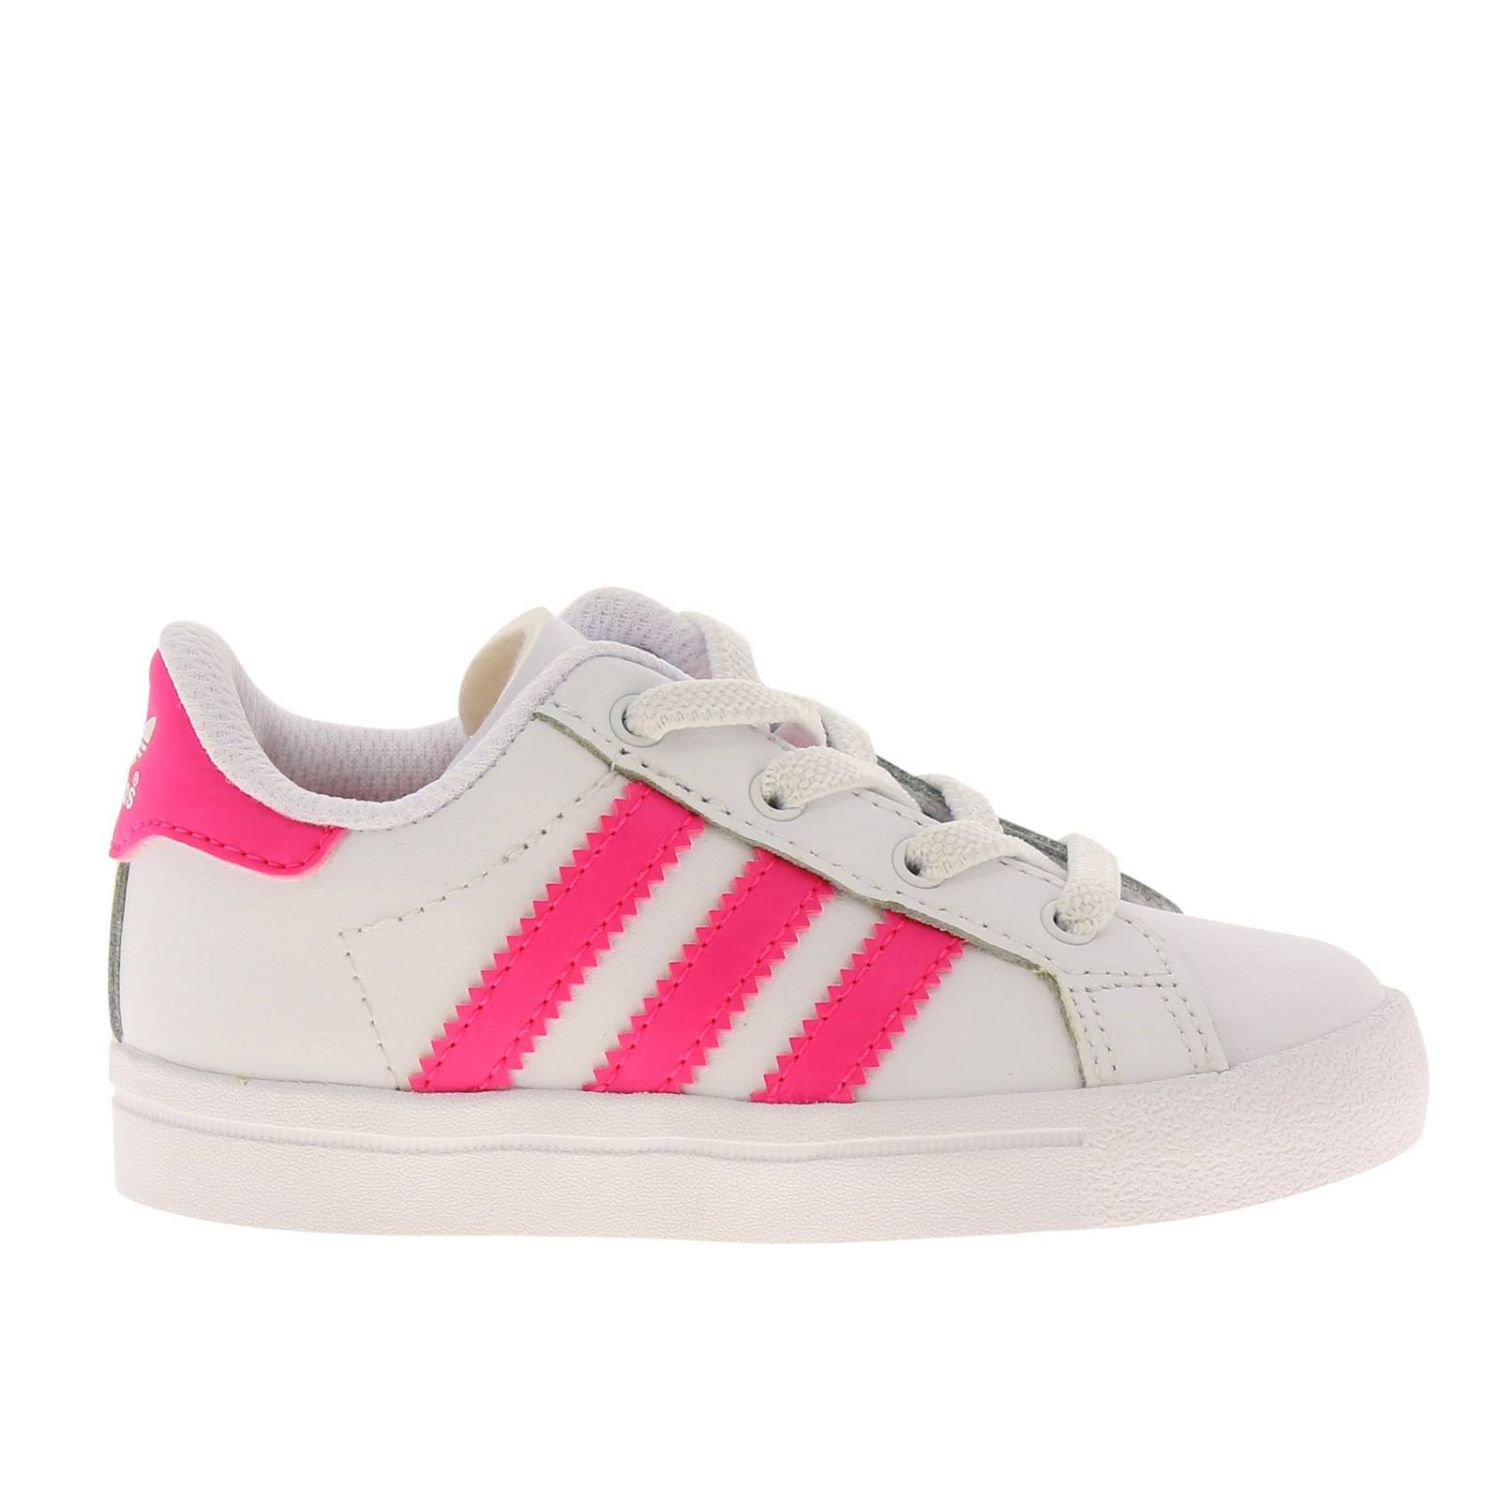 Shoes Adidas Originals: Adidas Originals Coast star sneakers in leather with contrasting bands white 1